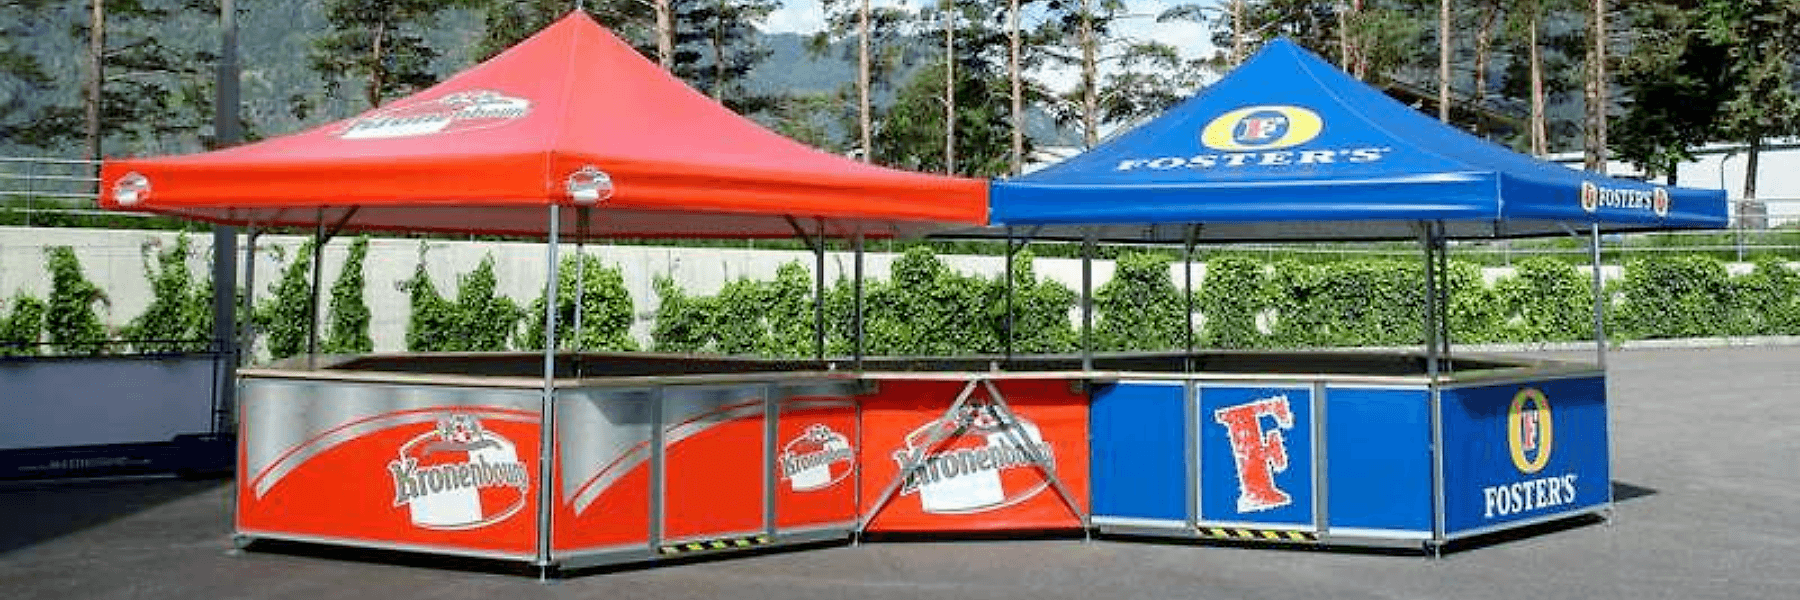 <p>Event, Mobile & Stadia Bars – Tents & Marquees – Hexagonal Pavilion</p> <p> </p> <p>Outdoor Event Bar – Fosters & Kronenbourg including joining kit, which enables 2 hexagonal or 2 octagonal bars to be linked together.</p> <p> </p> <p>Hexagonal Pavilion is ideal for serving Drinks, Food and can be used as a retail sales and promotion stand for selling merchandise at music concerts.</p>